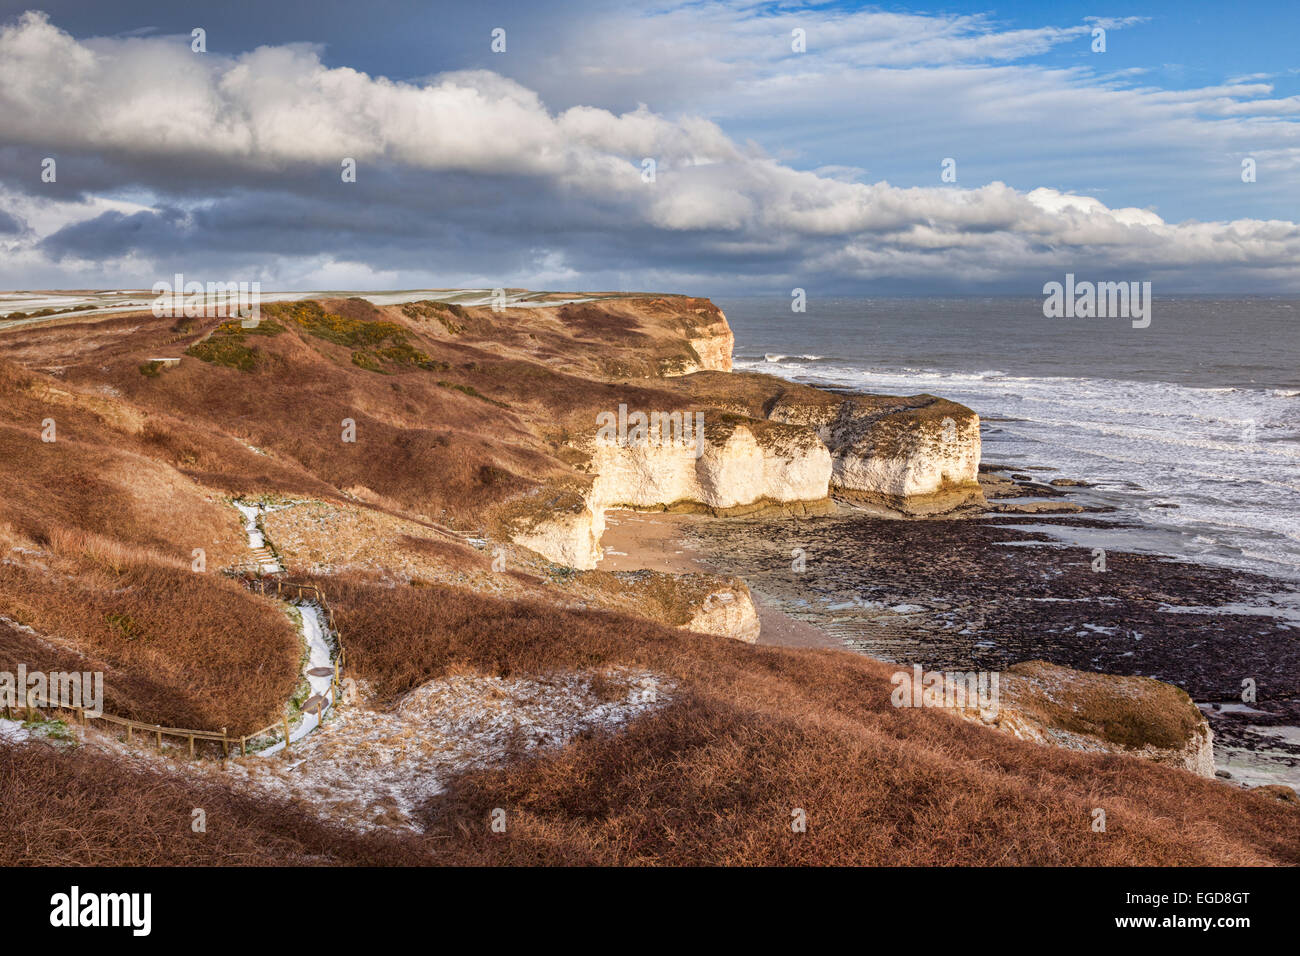 Flamborough Head, East Yorkshire, England, UK, die Kalkstein-Klippen bei Flamborough Kopf, im Winter mit einer leichten Stockbild